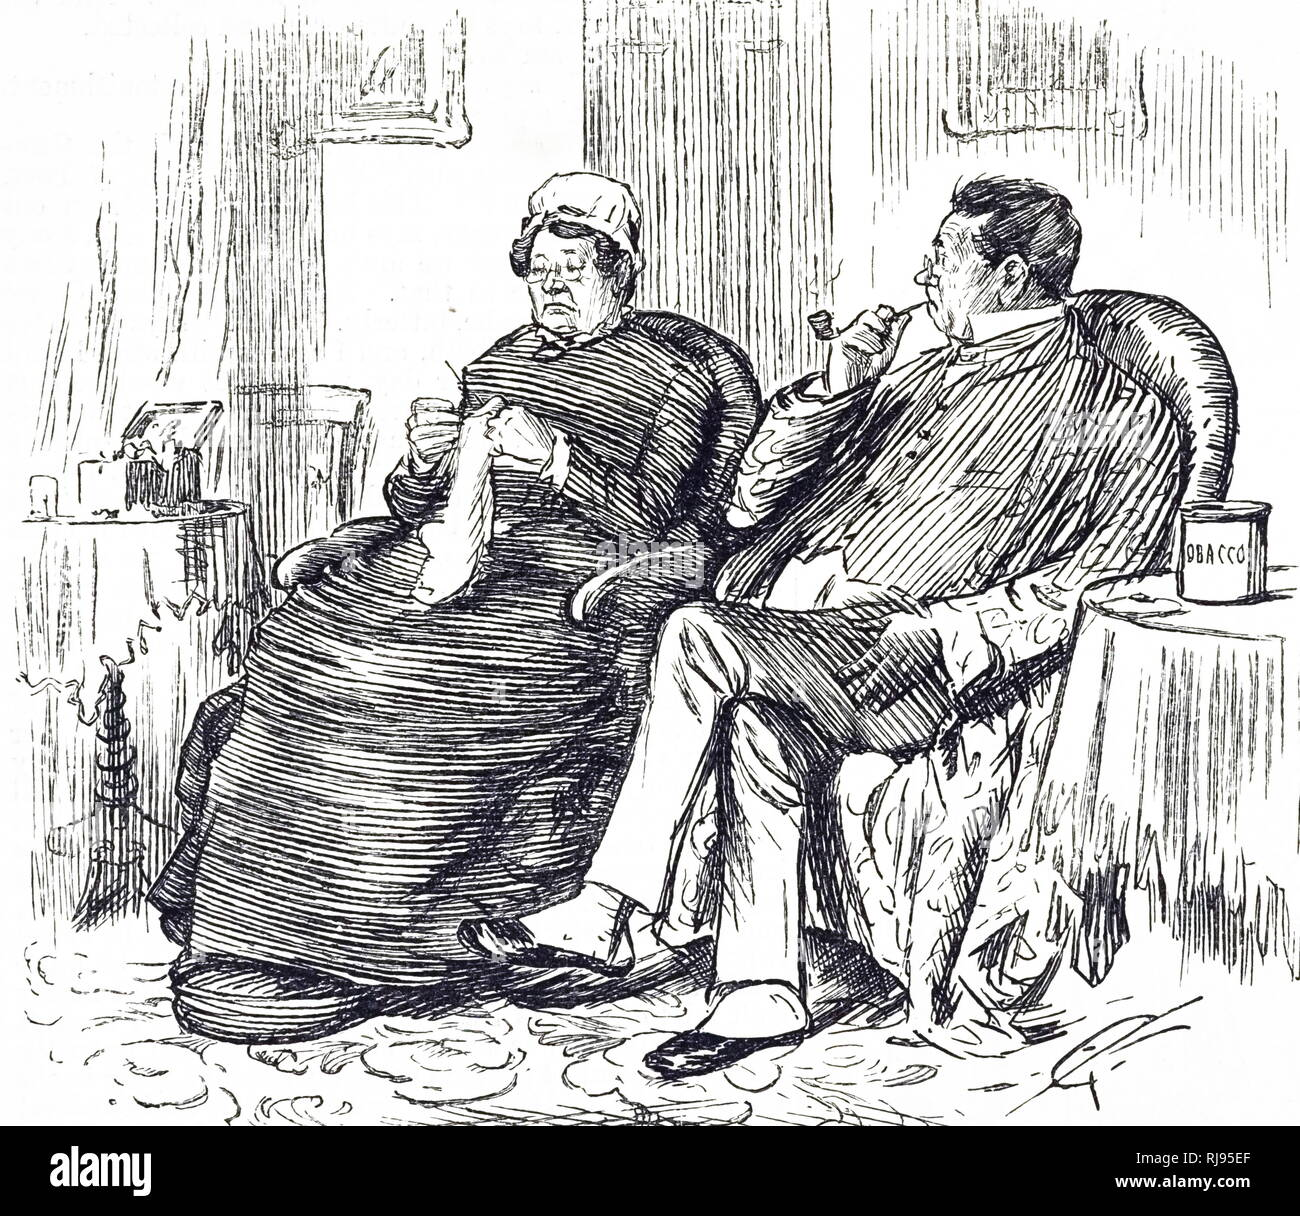 A cartoon commenting on the disinfectant properties of tobacco used as justification by the smoker. Dated 19th century - Stock Image